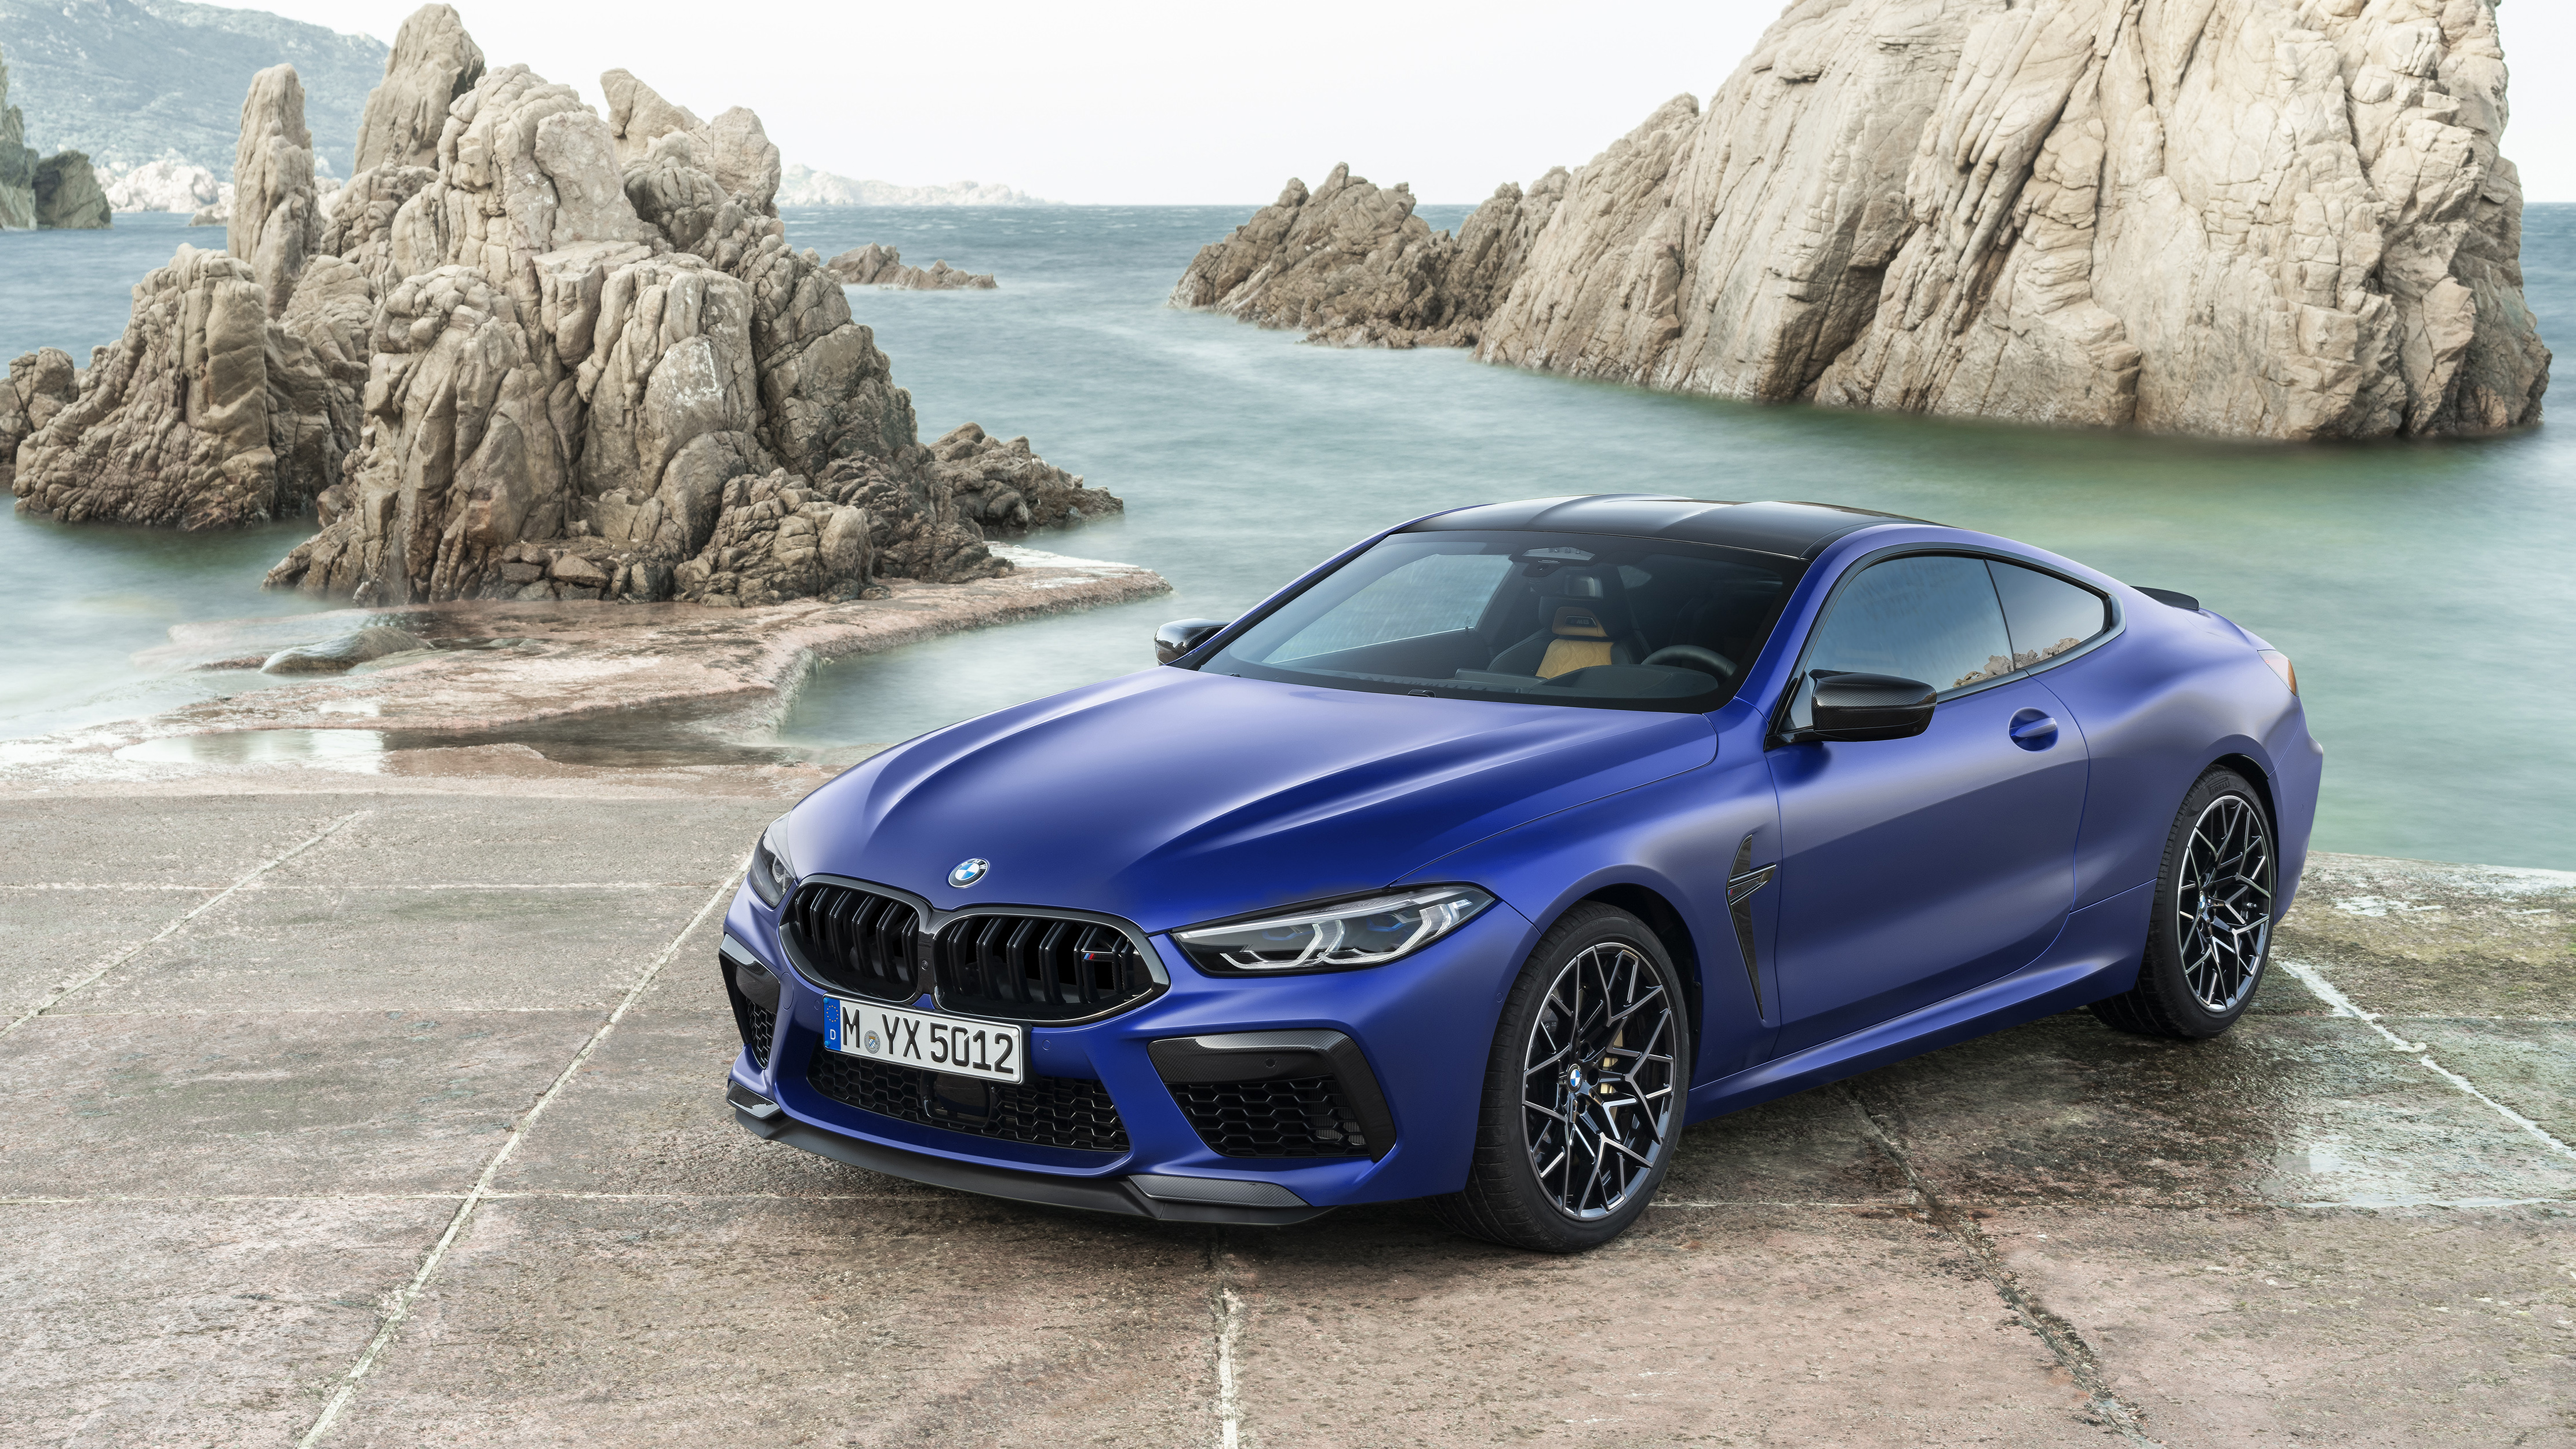 bmw m8 competition coupe 2019 4k wallpaper